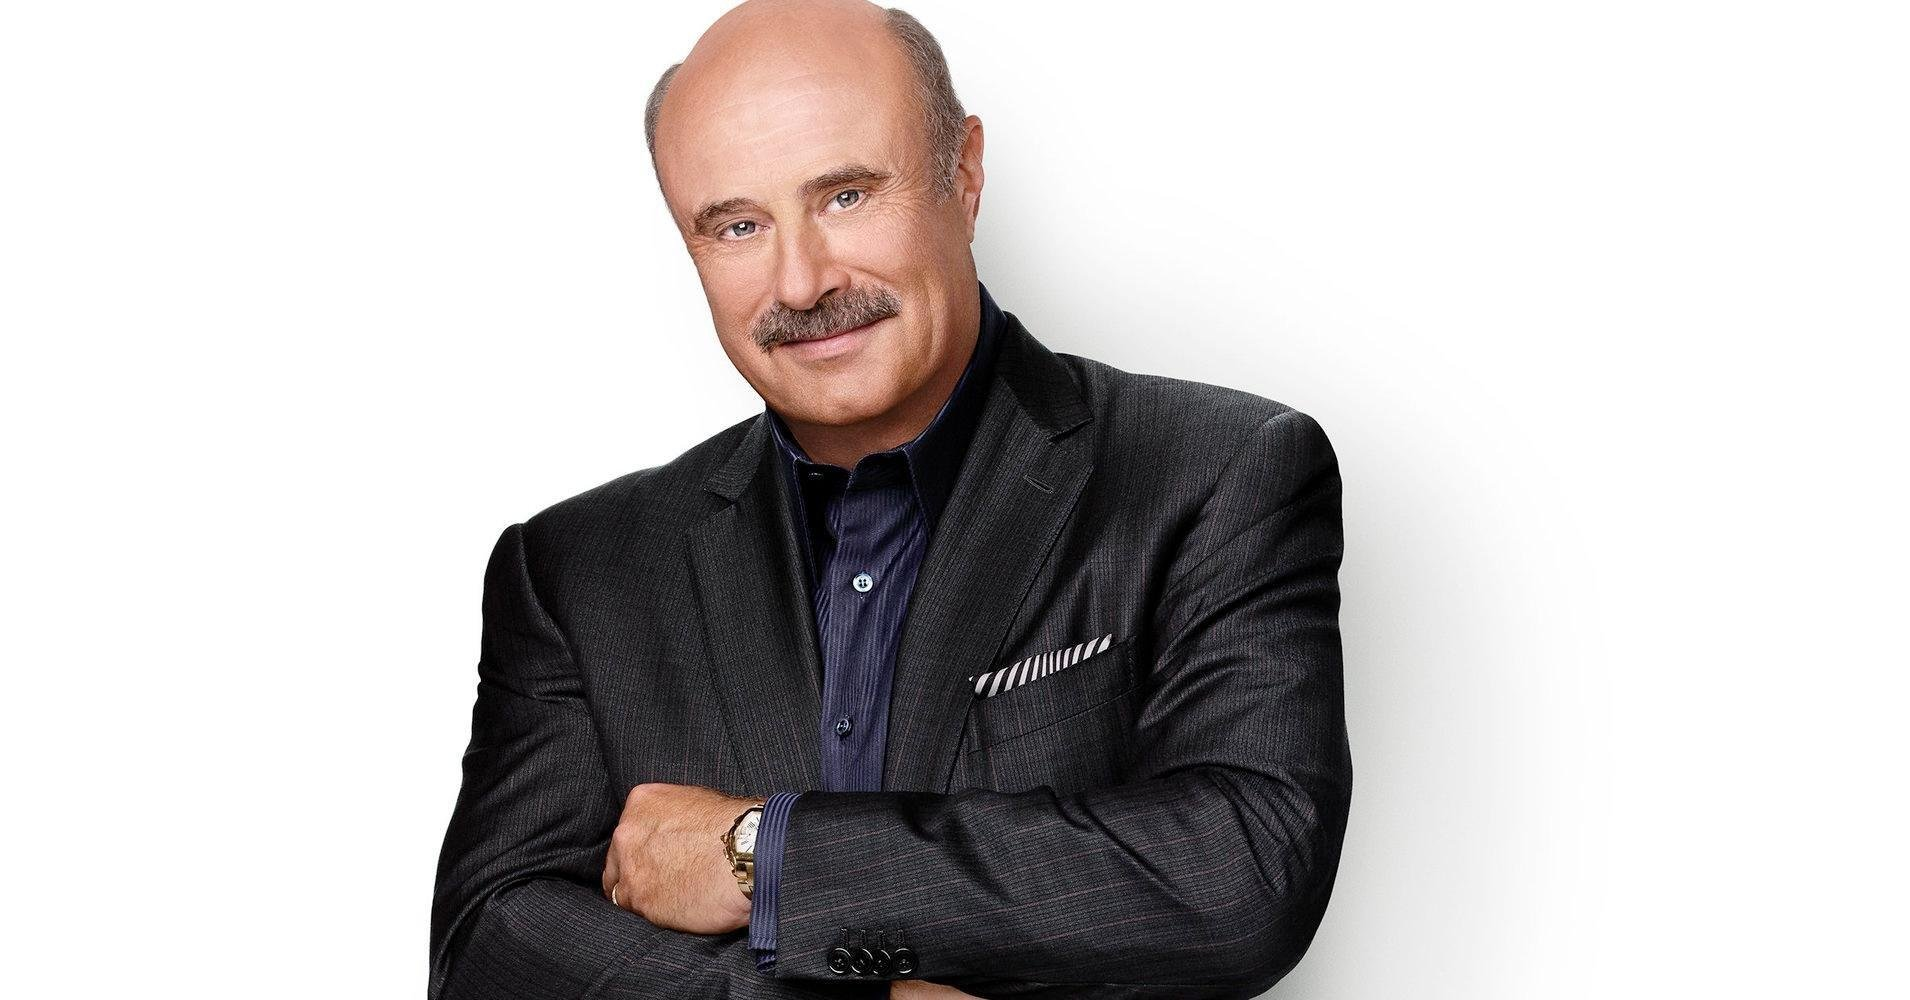 Dr. Phil Opens Up About Living With Type 2 Diabetes For 25 Years